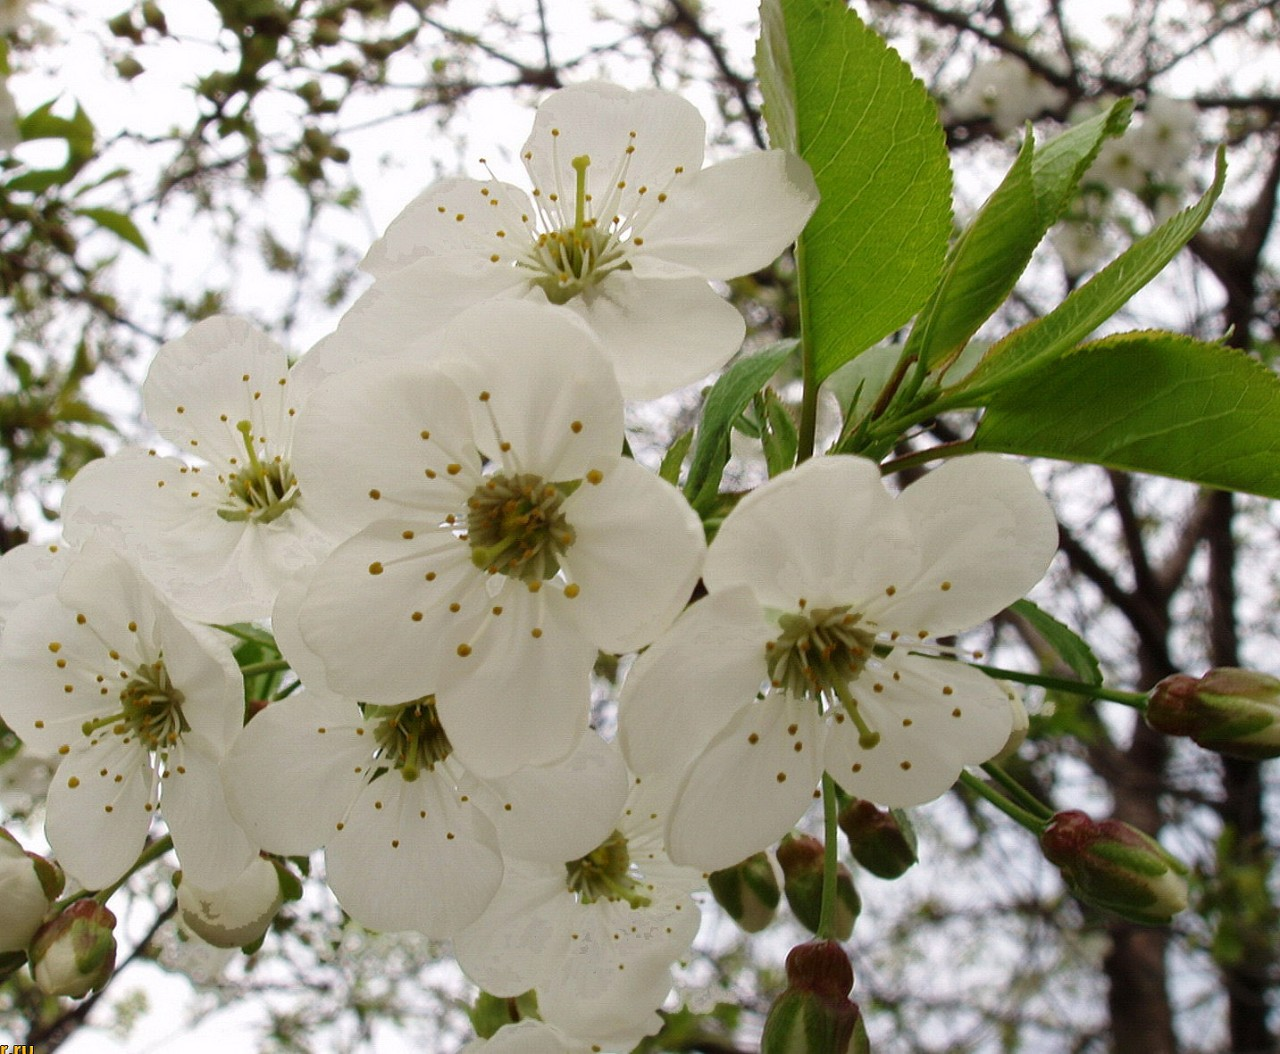 A pear tree's white flowers.